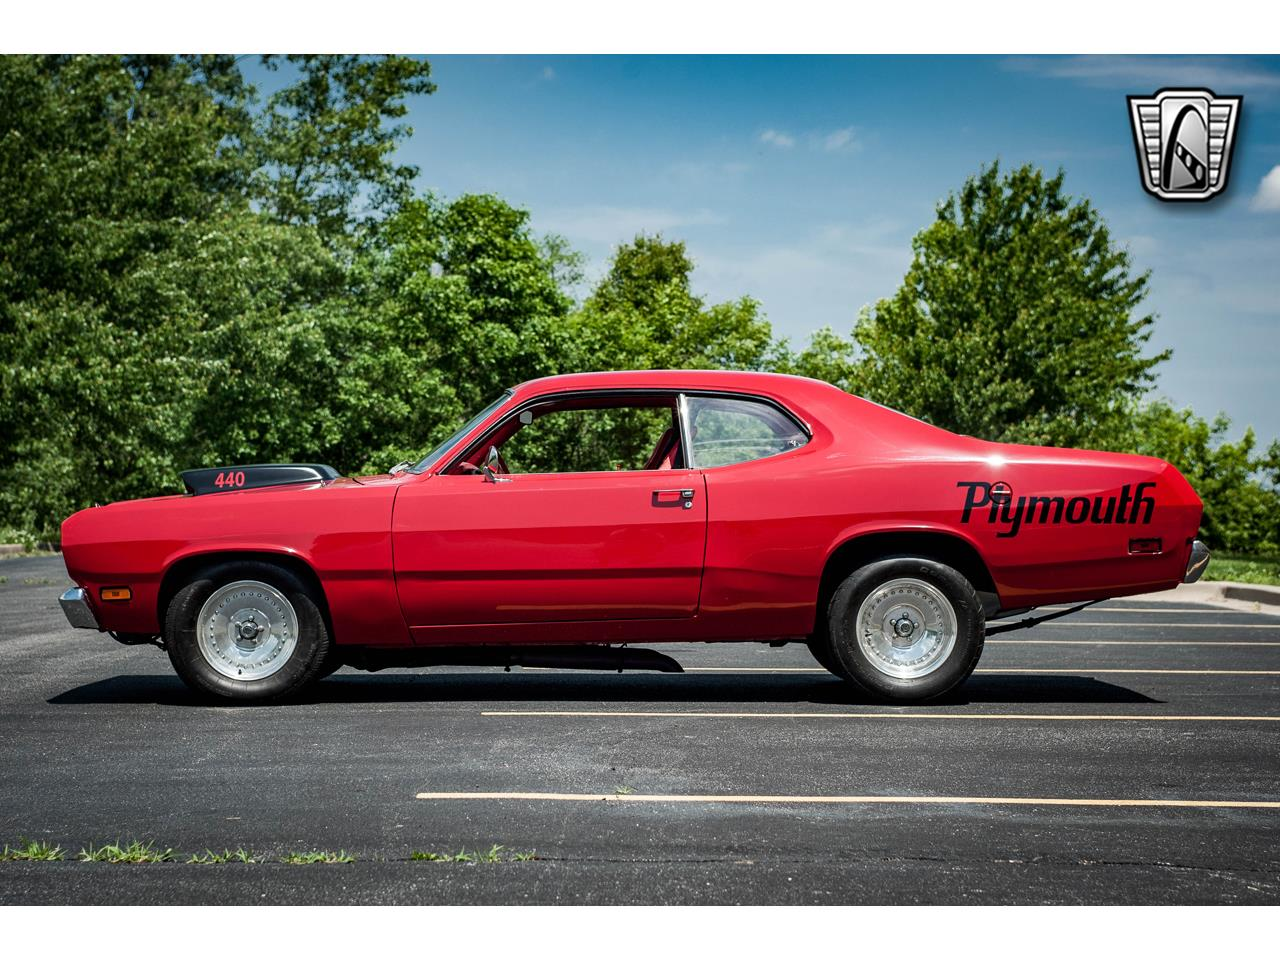 Large Picture of Classic 1971 Plymouth Duster located in Illinois - QB9U